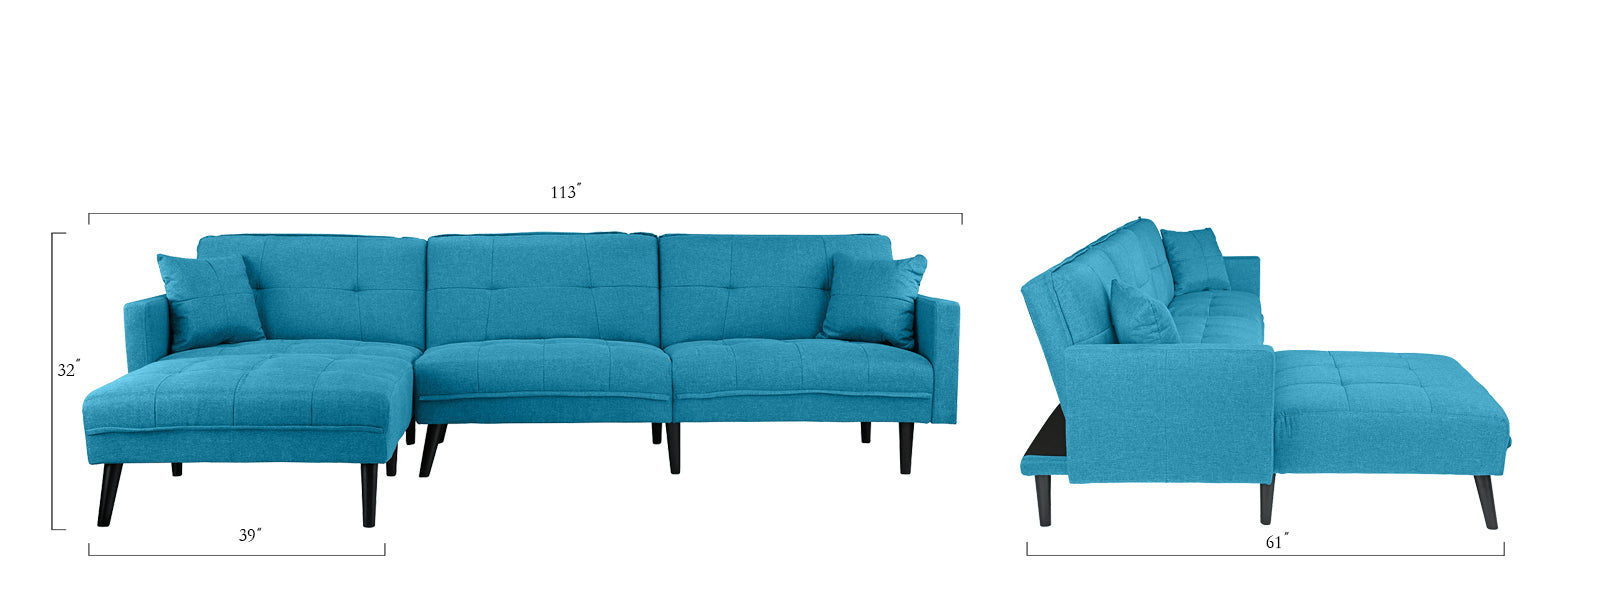 Cool Romulo Mid Century Modern Linen Sleeper Sectional Sofa With Chaise Alphanode Cool Chair Designs And Ideas Alphanodeonline